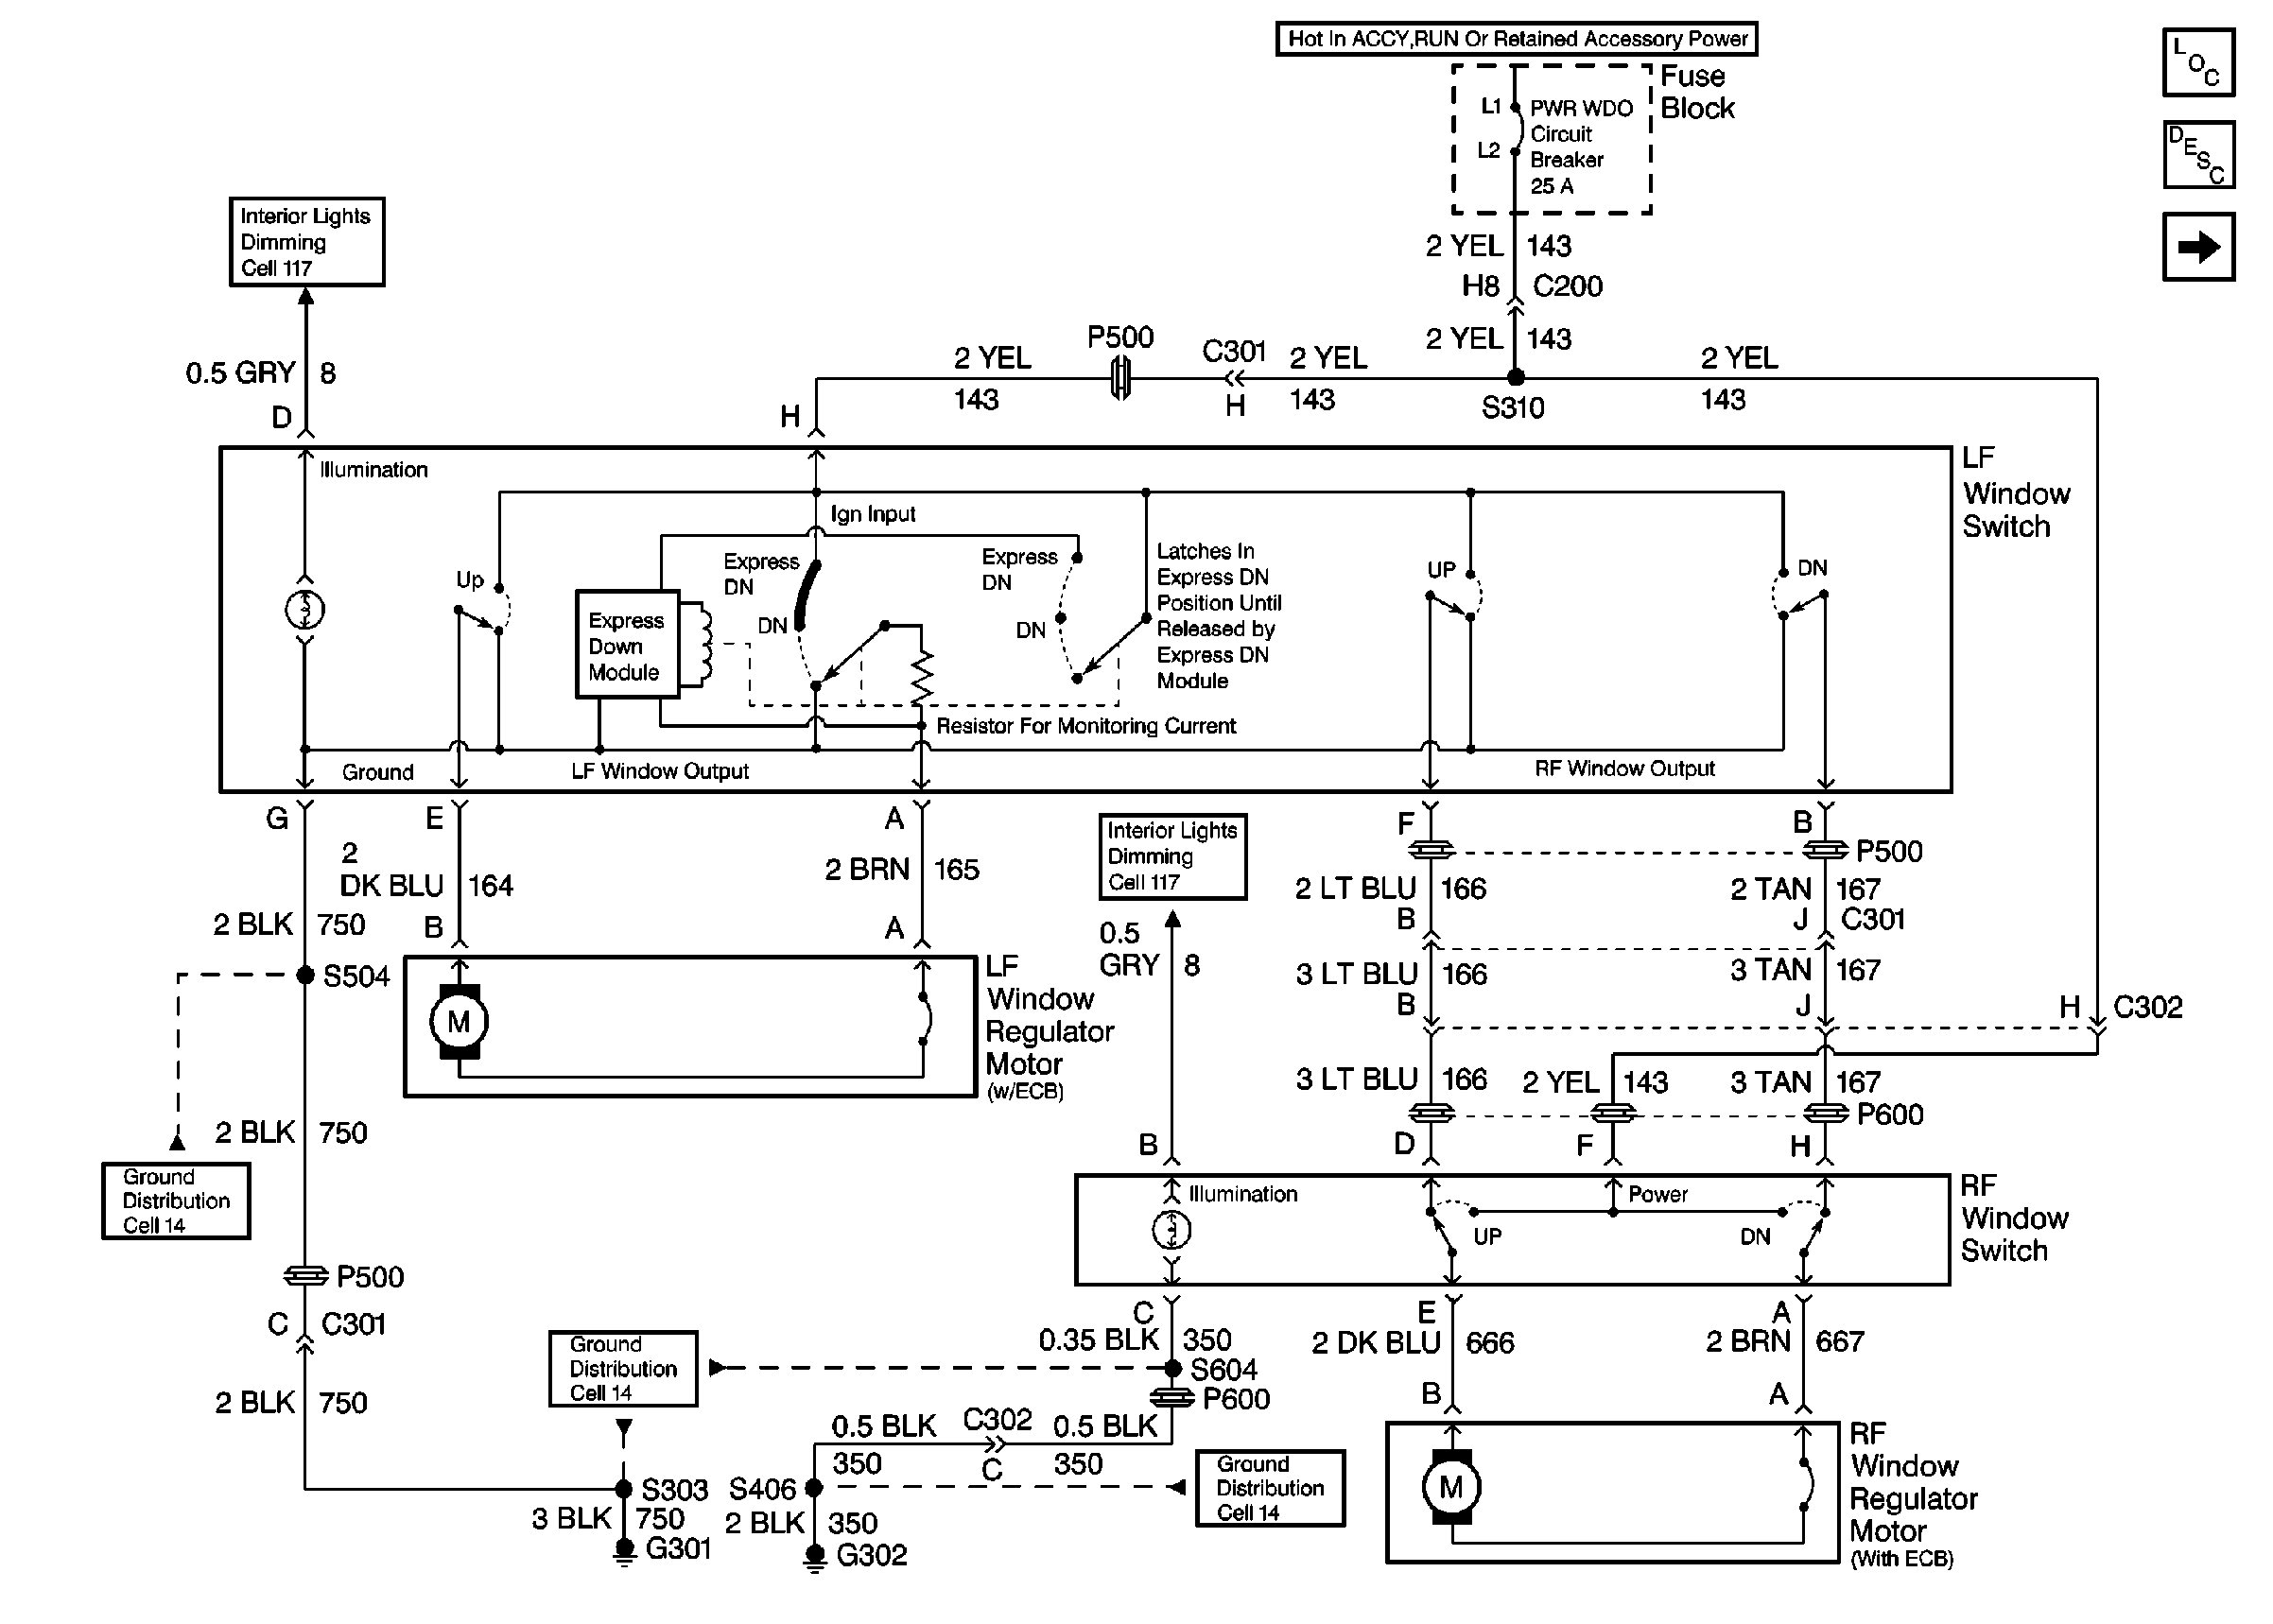 1500 Goldwing Wiring Diagram 1998 | Best Wiring Liry on honda wiring diagram, crf wiring diagram, st wiring diagram, service wiring diagram, motorcycle wiring diagram, accessories wiring diagram, sci-fi wiring diagram, cmx250c wiring diagram, cb1100 wiring diagram, fjr wiring diagram, norton wiring diagram, gl1100 wiring diagram, cr wiring diagram, renegade wiring diagram, gl1500 wiring diagram, crf450r wiring diagram, avalon wiring diagram, snowmobile wiring diagram, gl1200 wiring diagram, phantom wiring diagram,